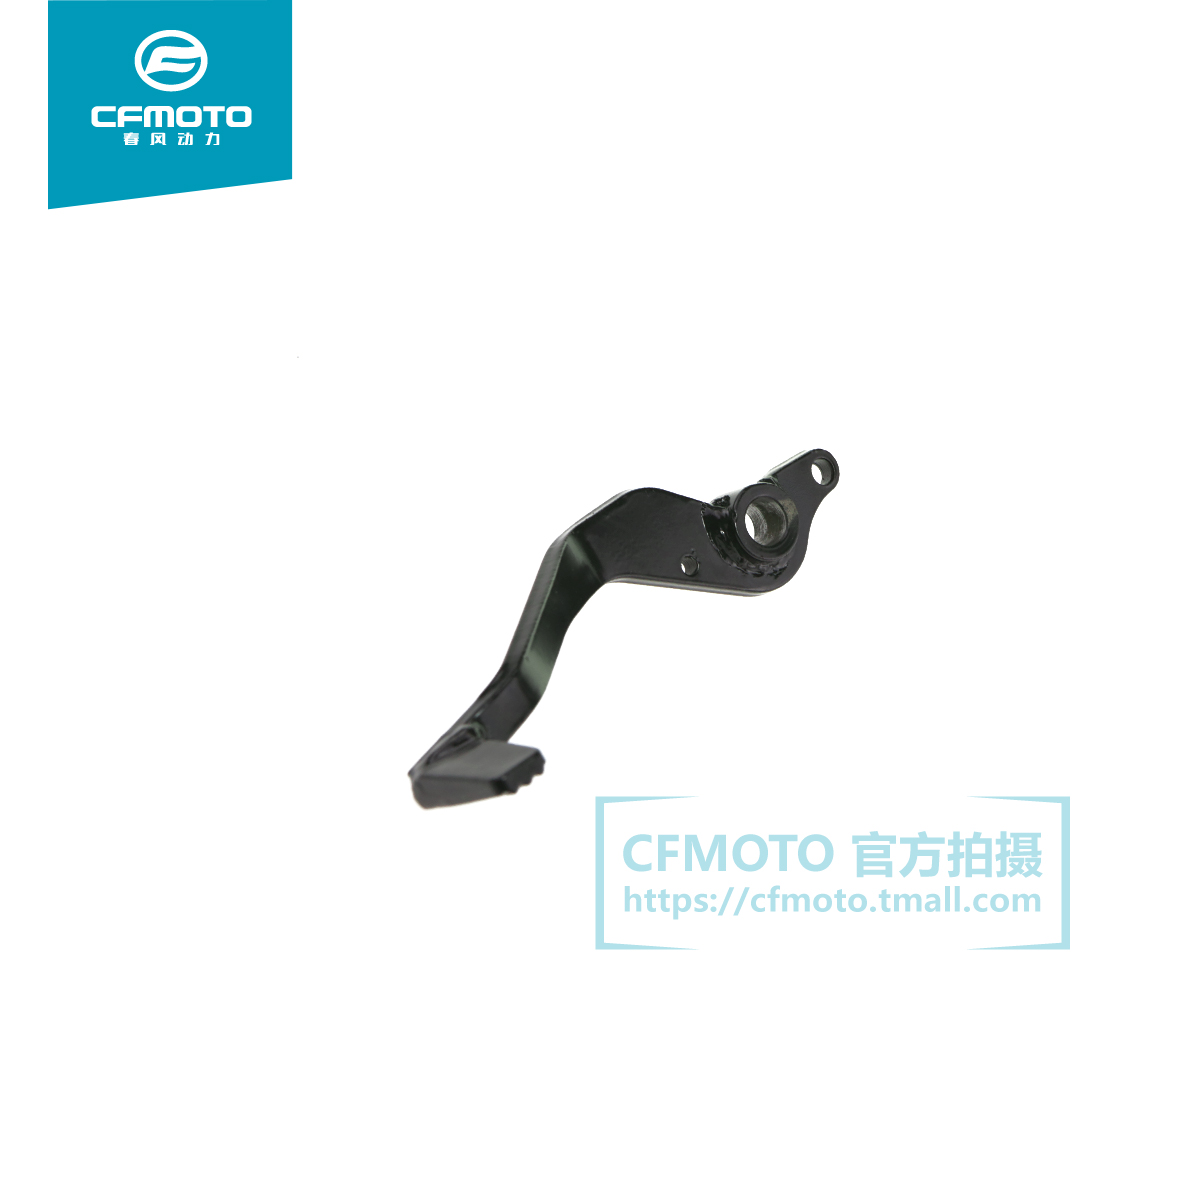 Cfmoto spring cf650 power/cf650nk after motorcycle accessories brake pedal assembly